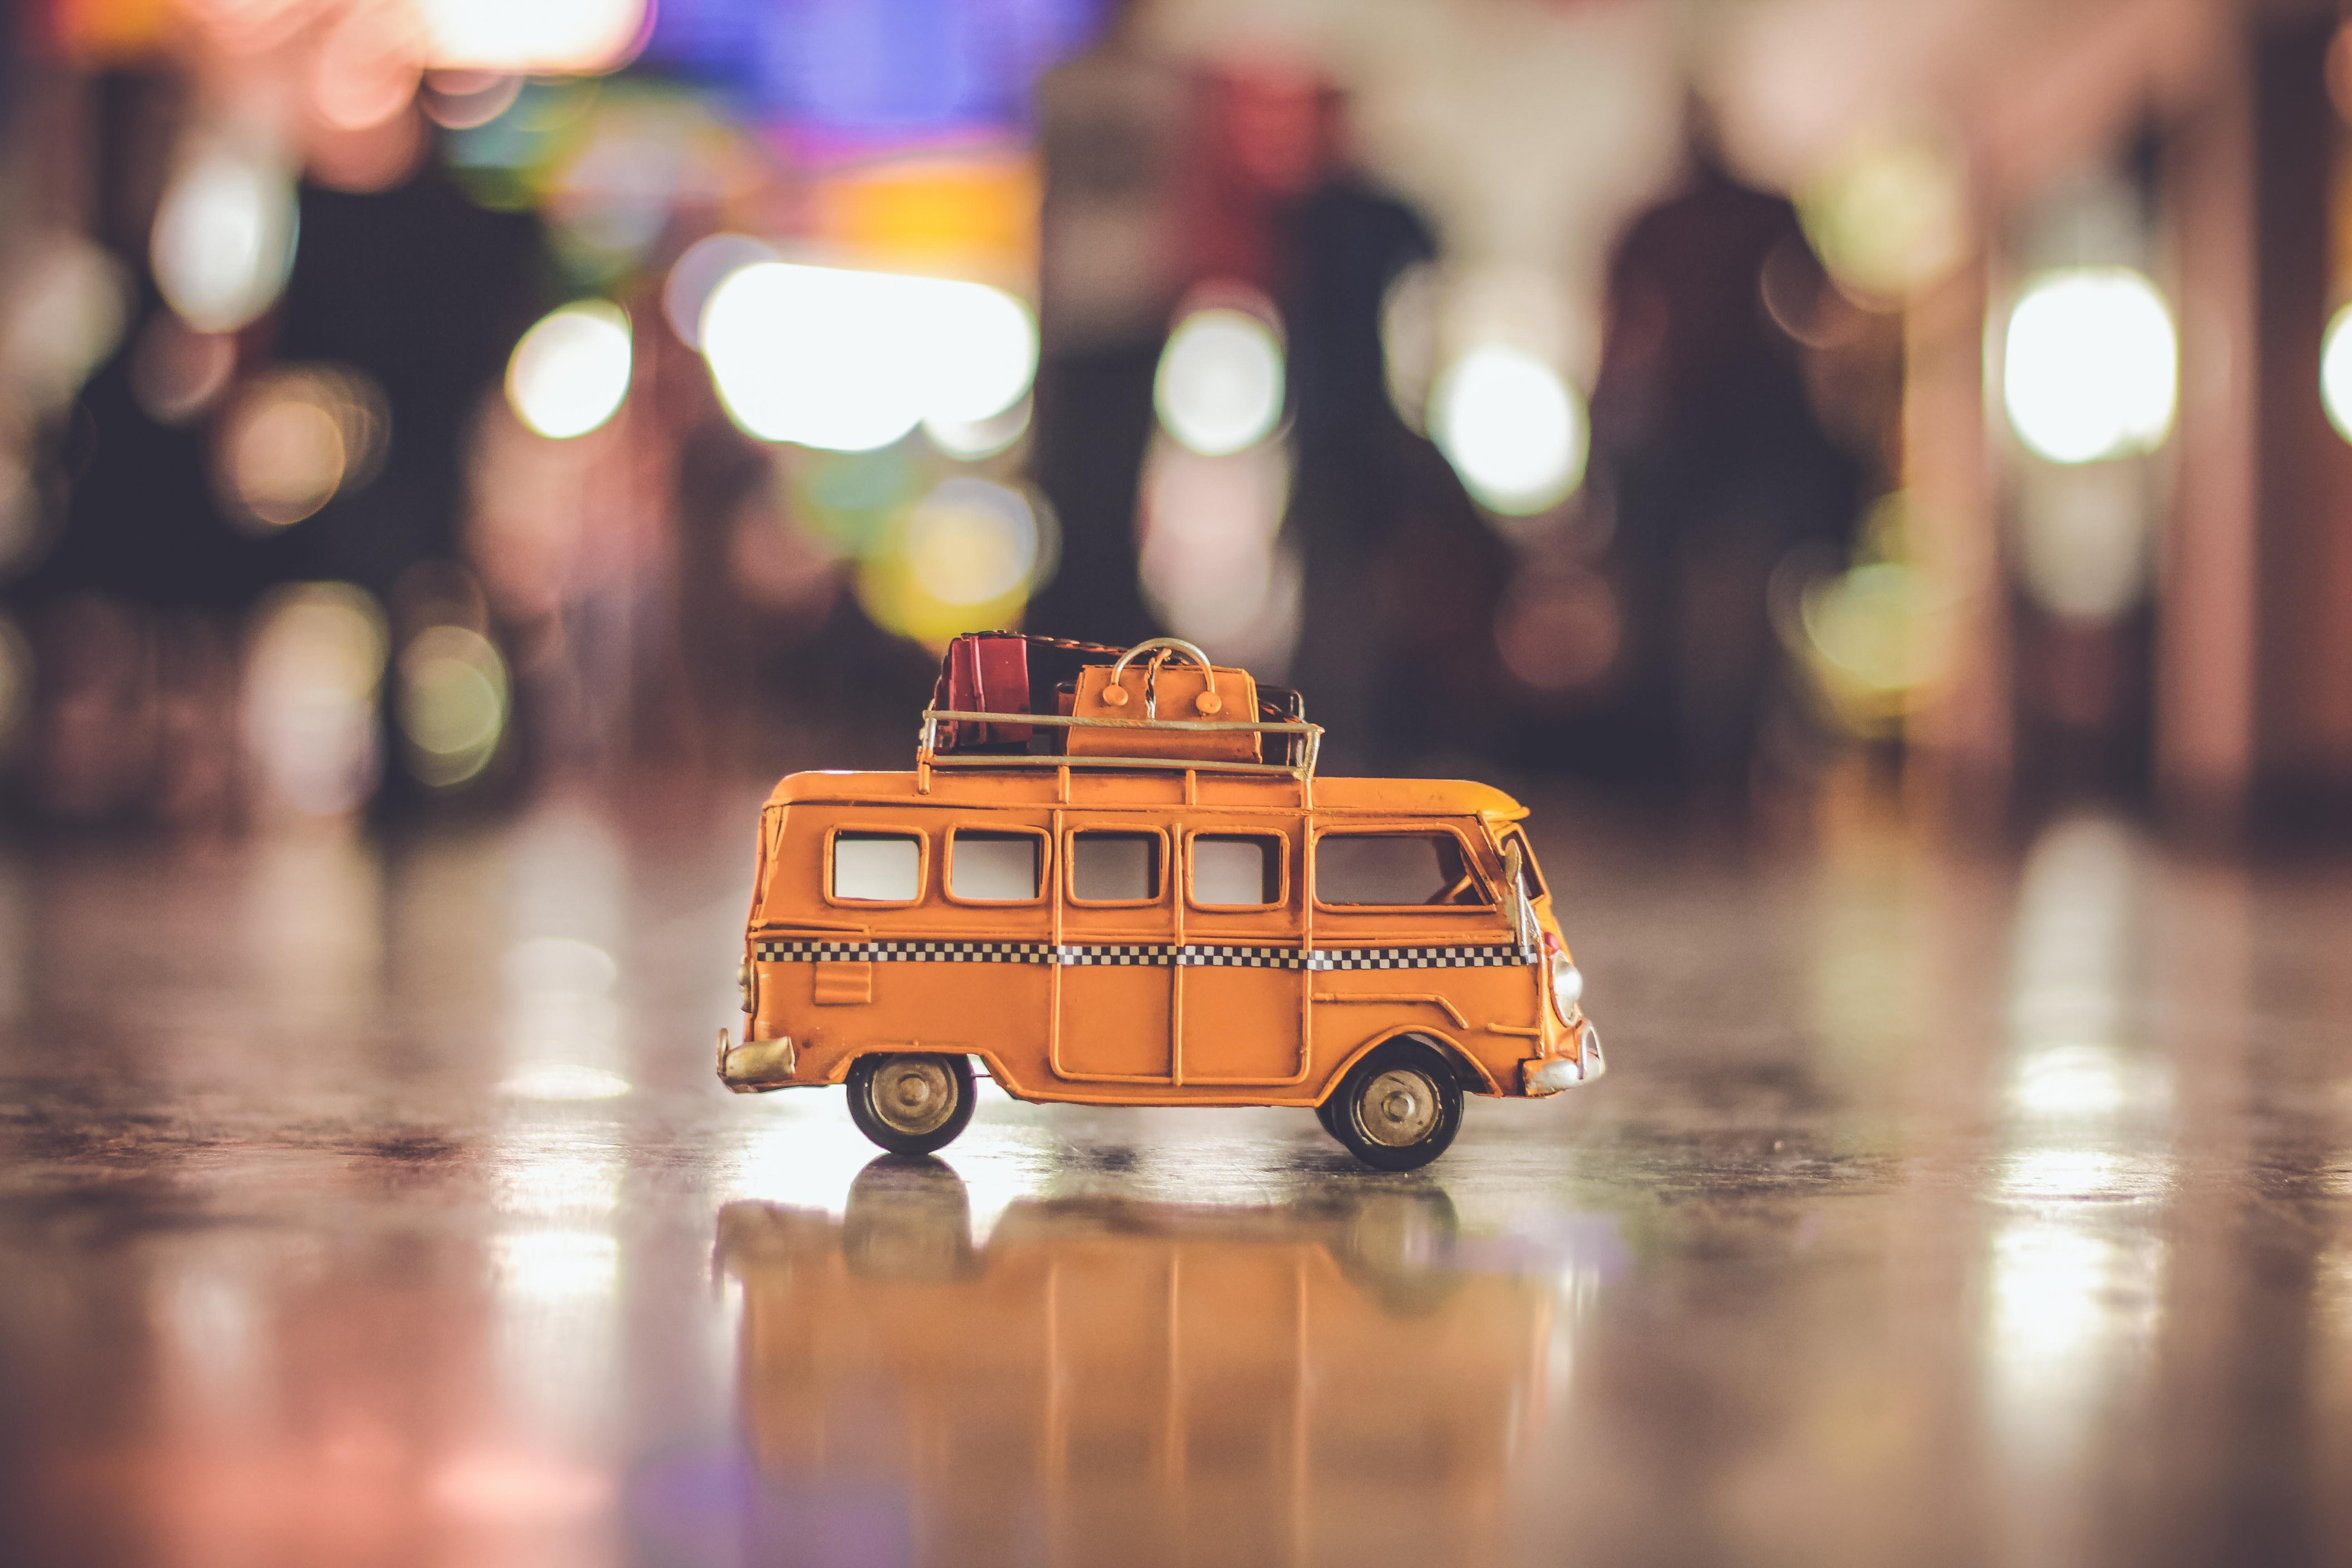 Toy Camper Van With A Blurry Background